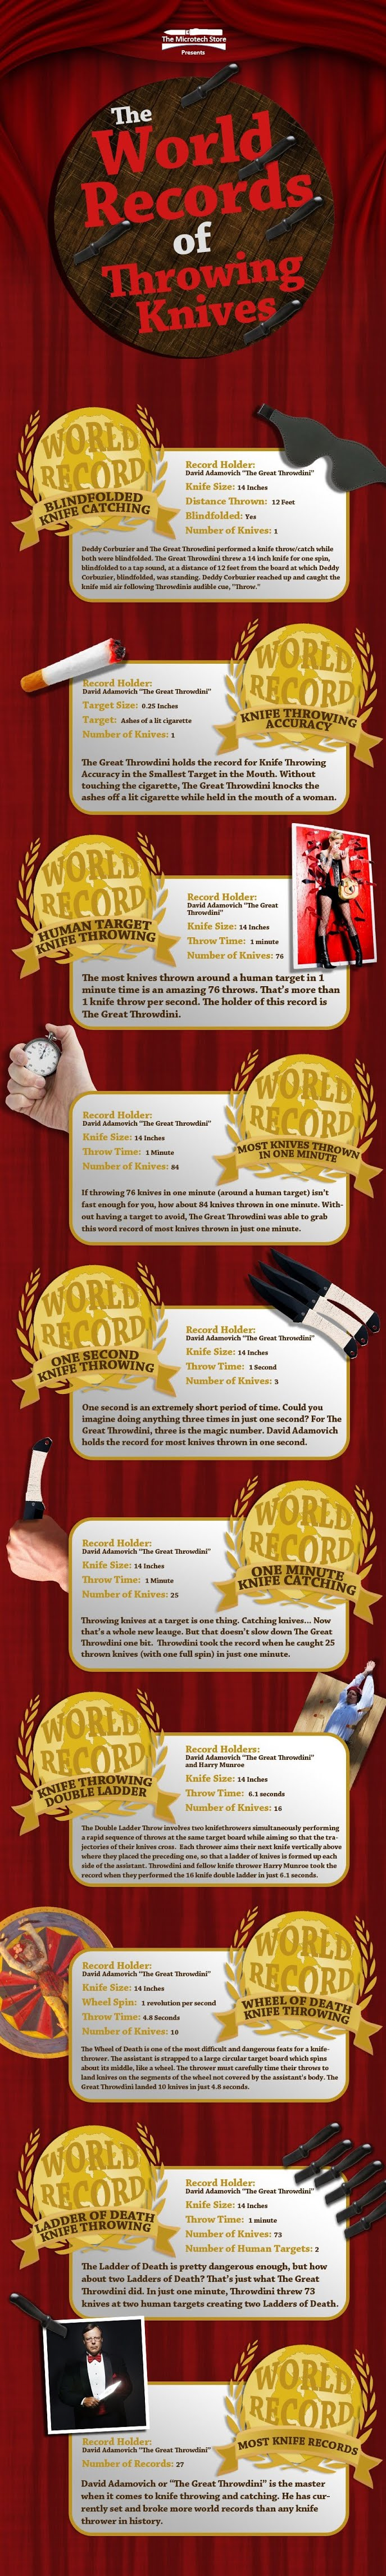 The World Records of Throwing Knives #infographic